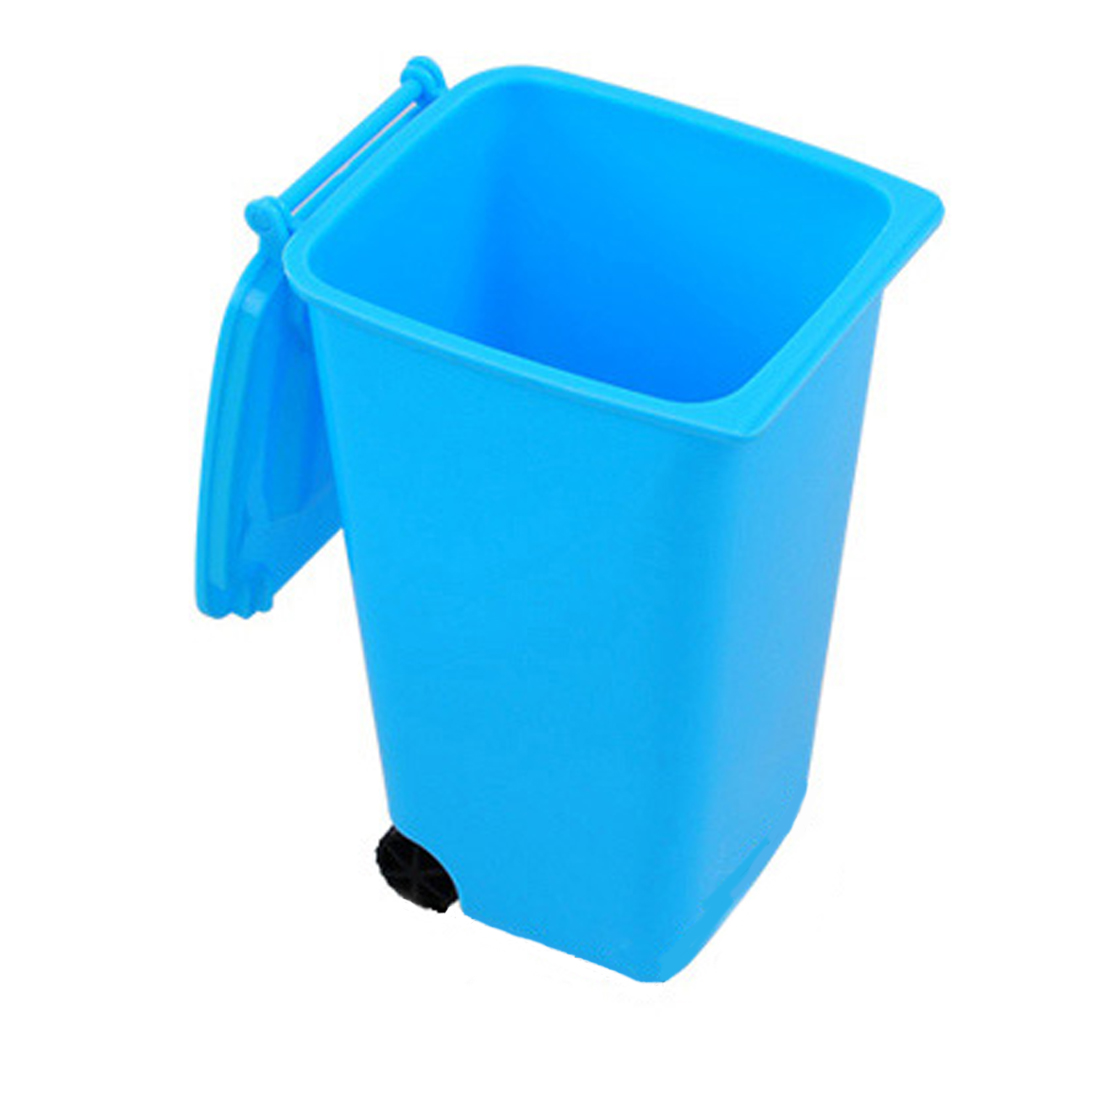 Top Sale Garbage Bucket Colorful Trash Can and High quality Recycling Mini Storage Bin Pen Holder for home or outdoor